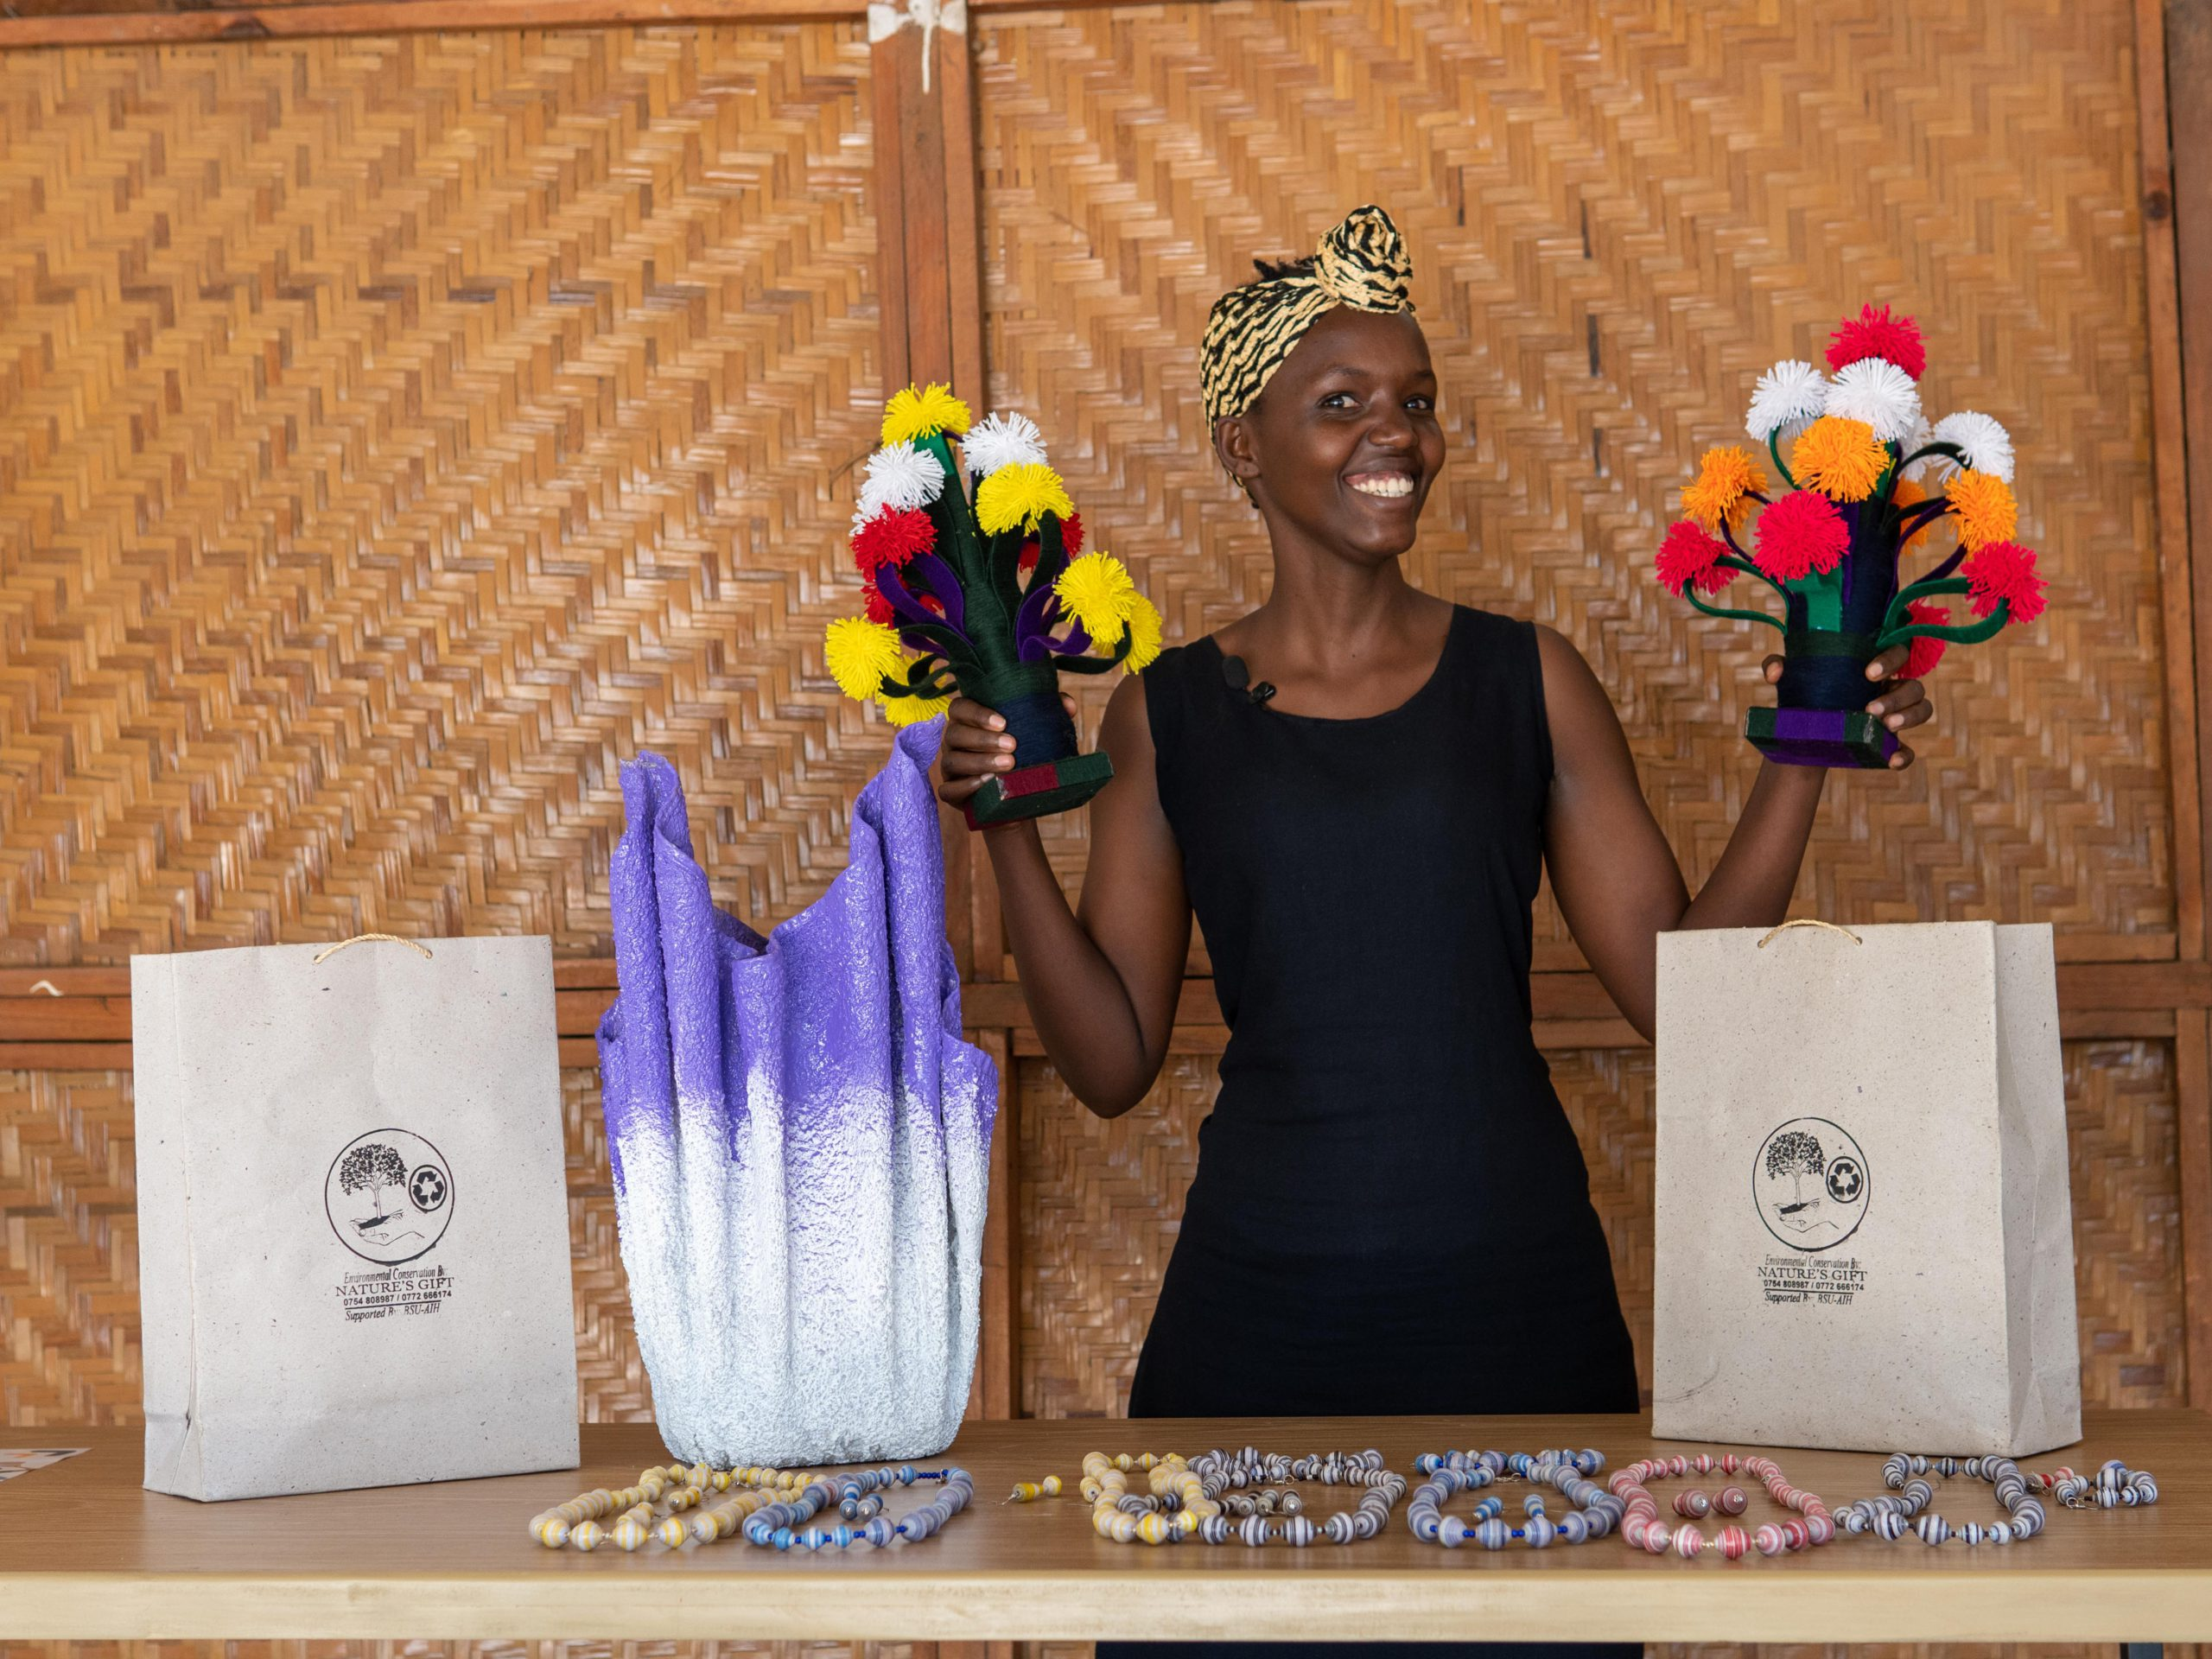 Patience adorned in colourful beads